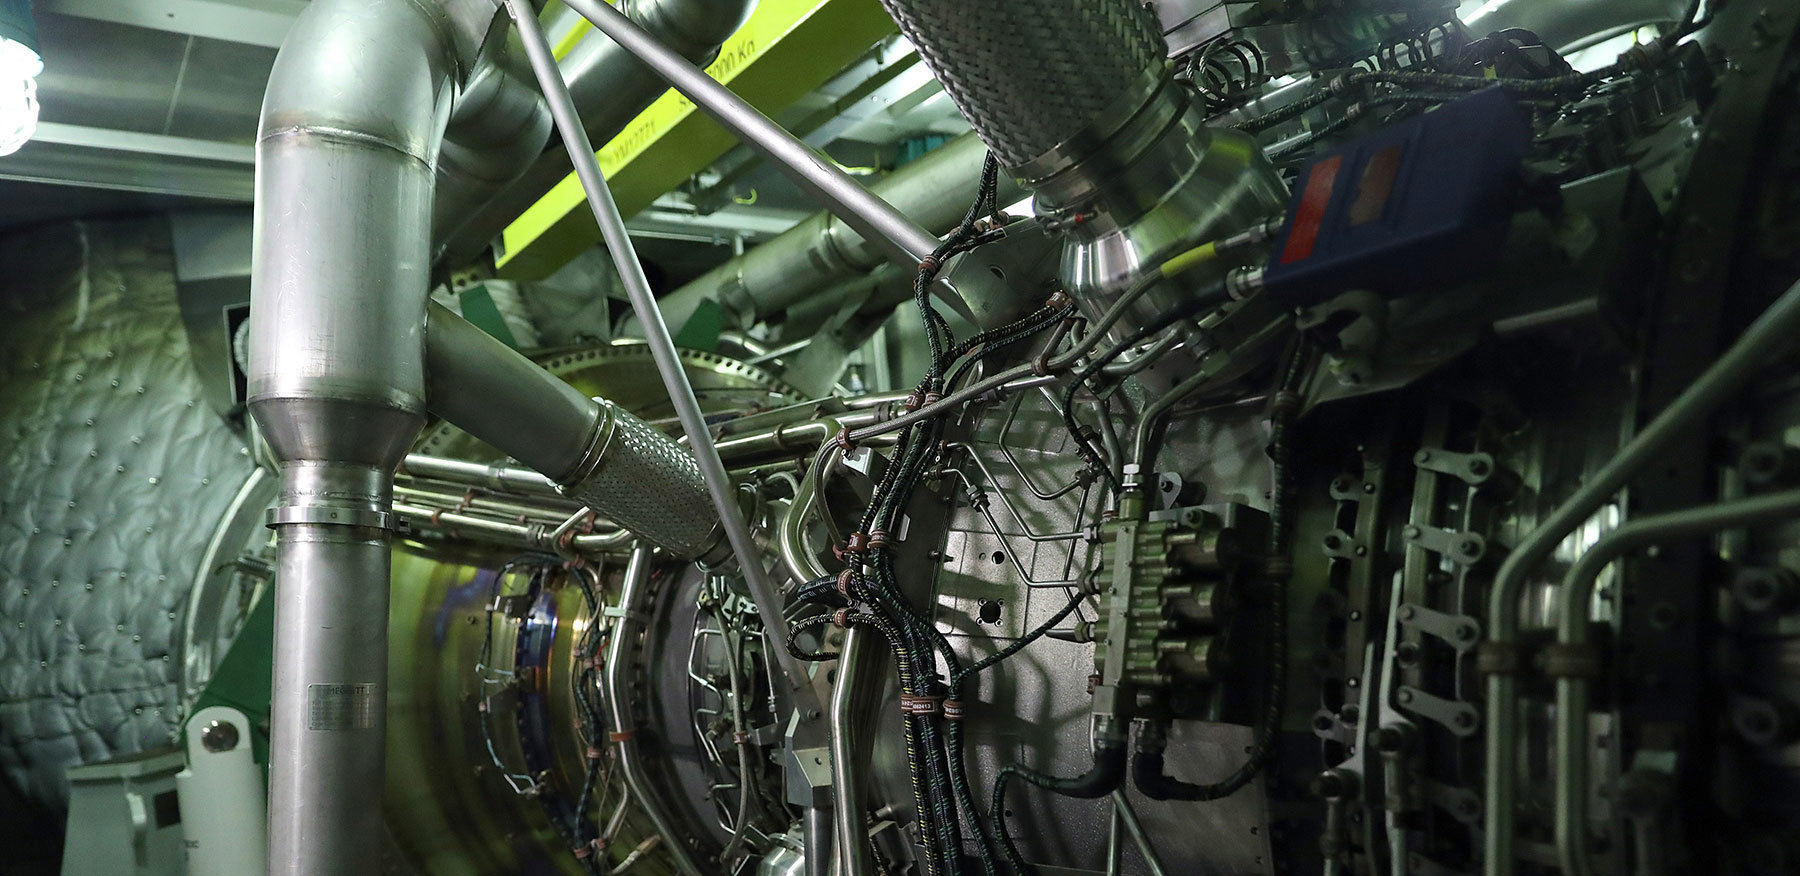 MT30 Gas Turbine Engine